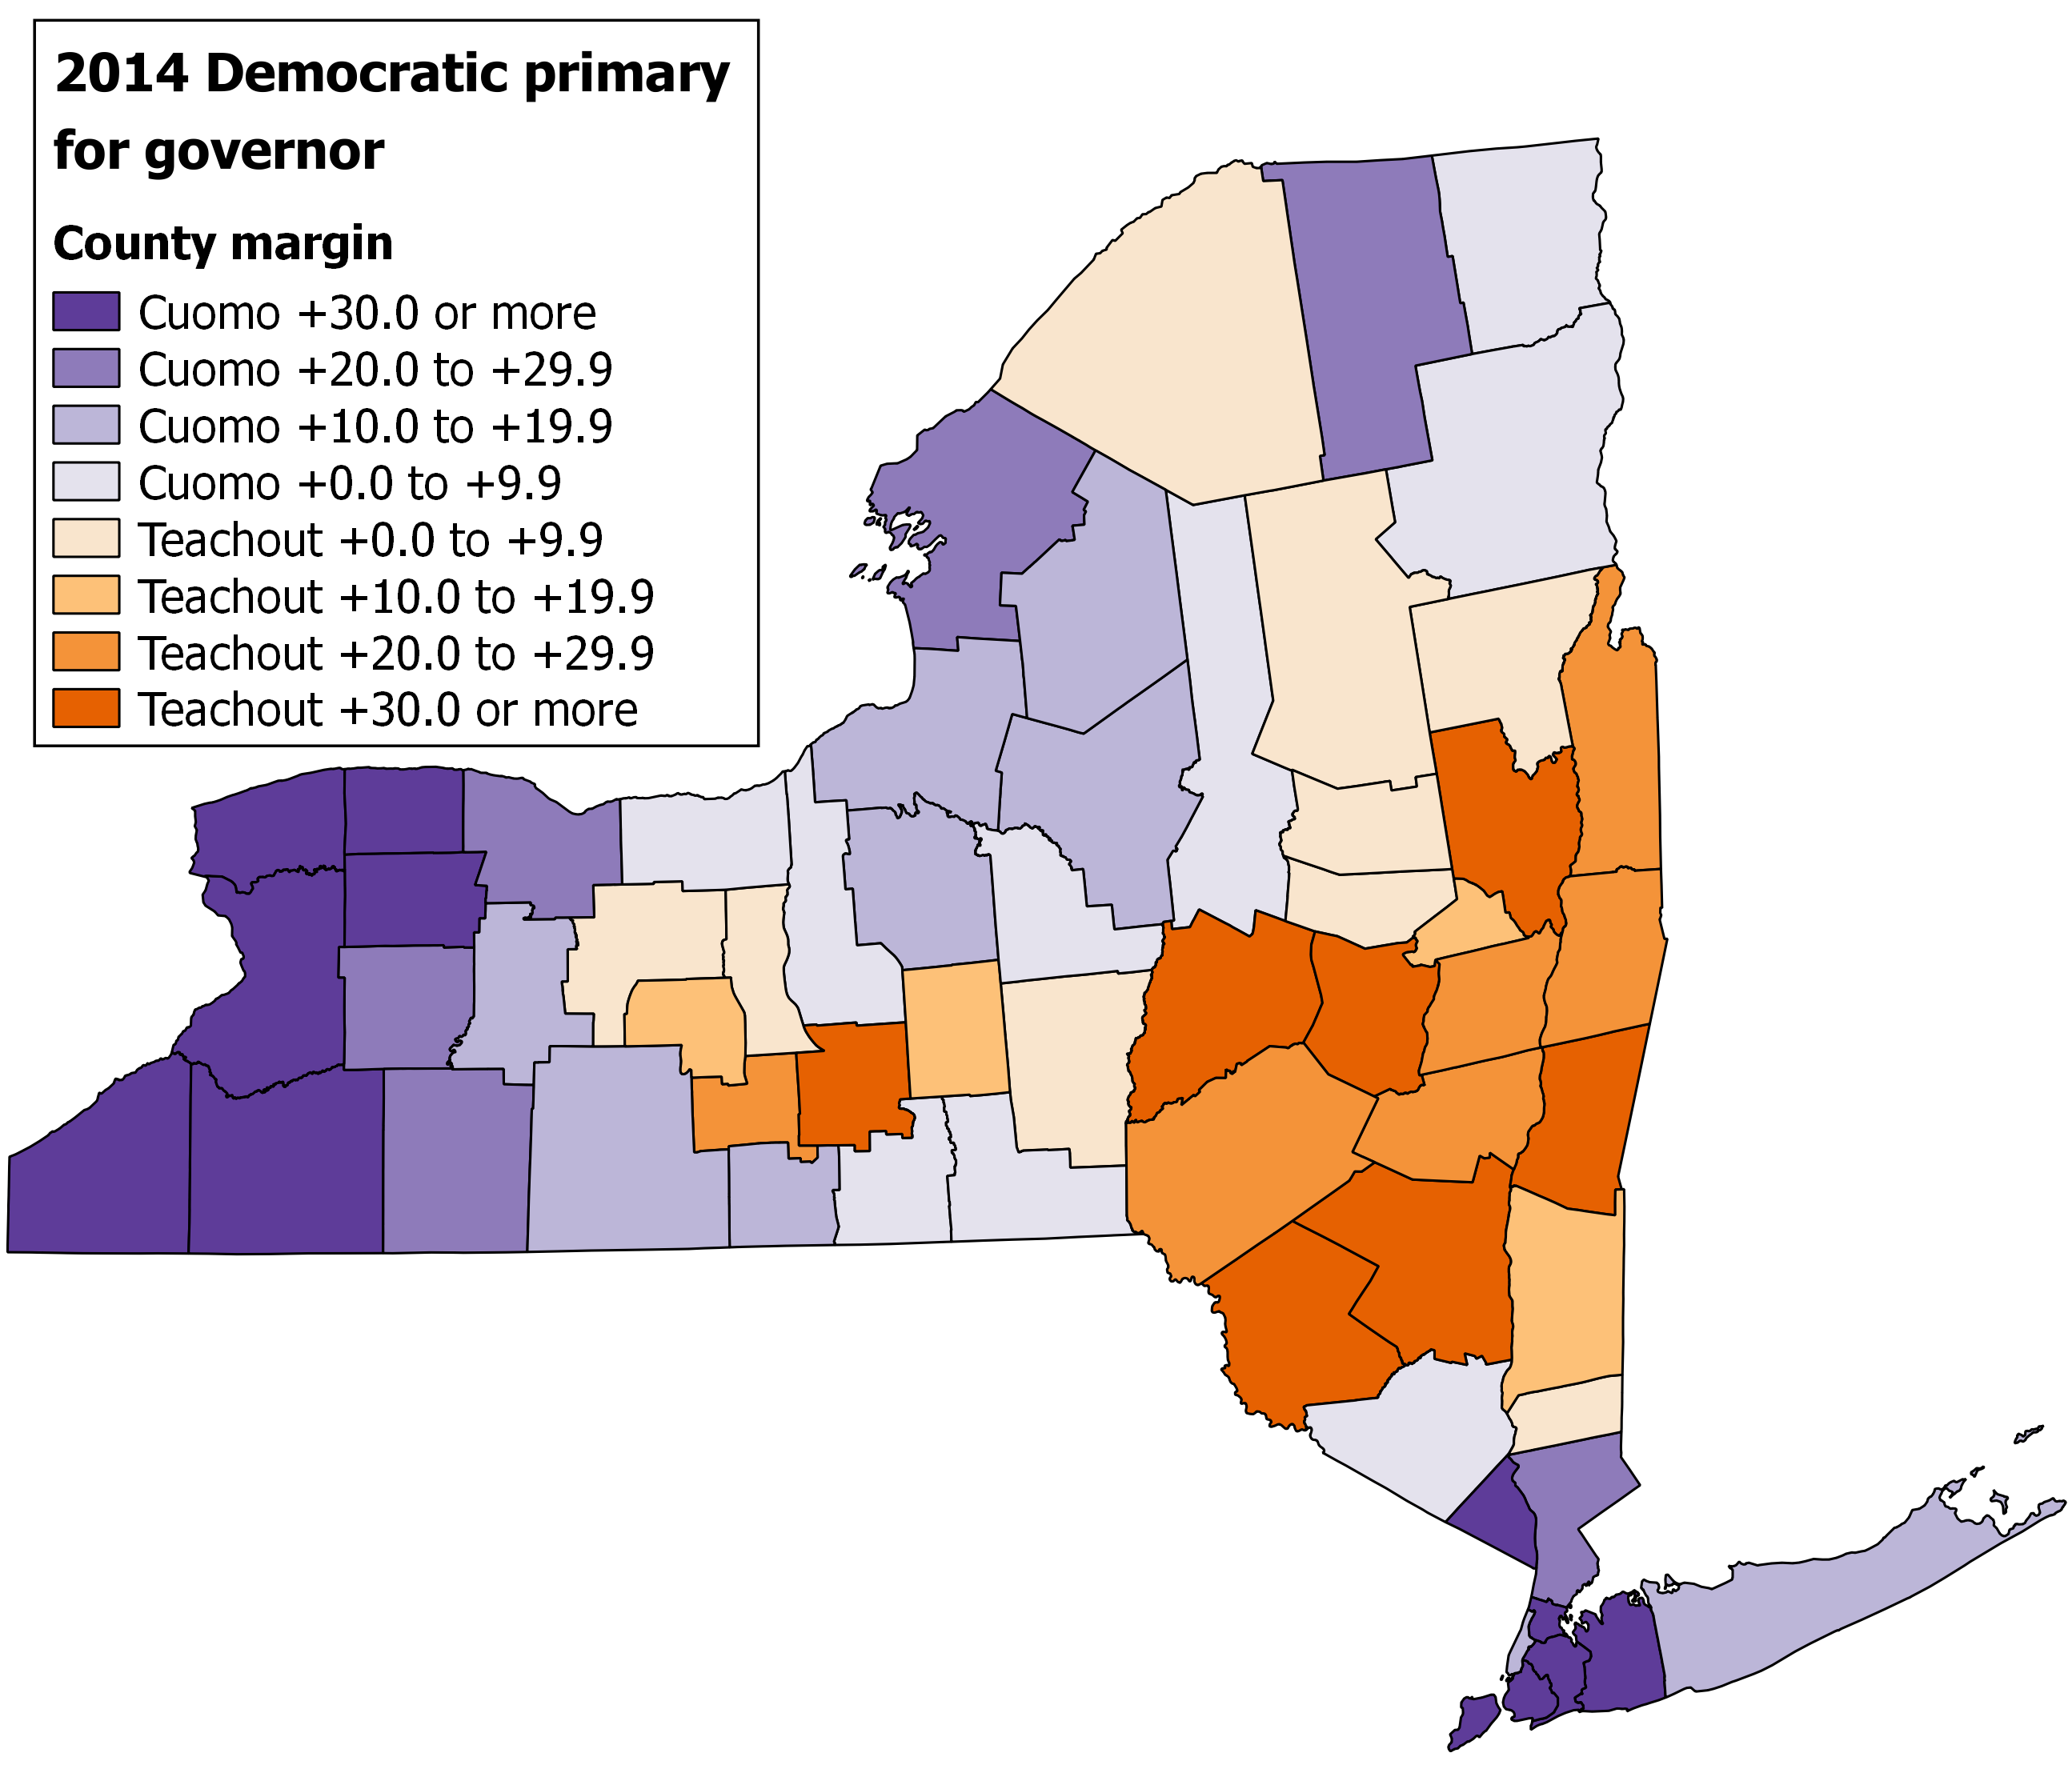 maps 1 and 2 county map and cartogram of cuomo and teachout margins in the 2014 democratic primary for governor